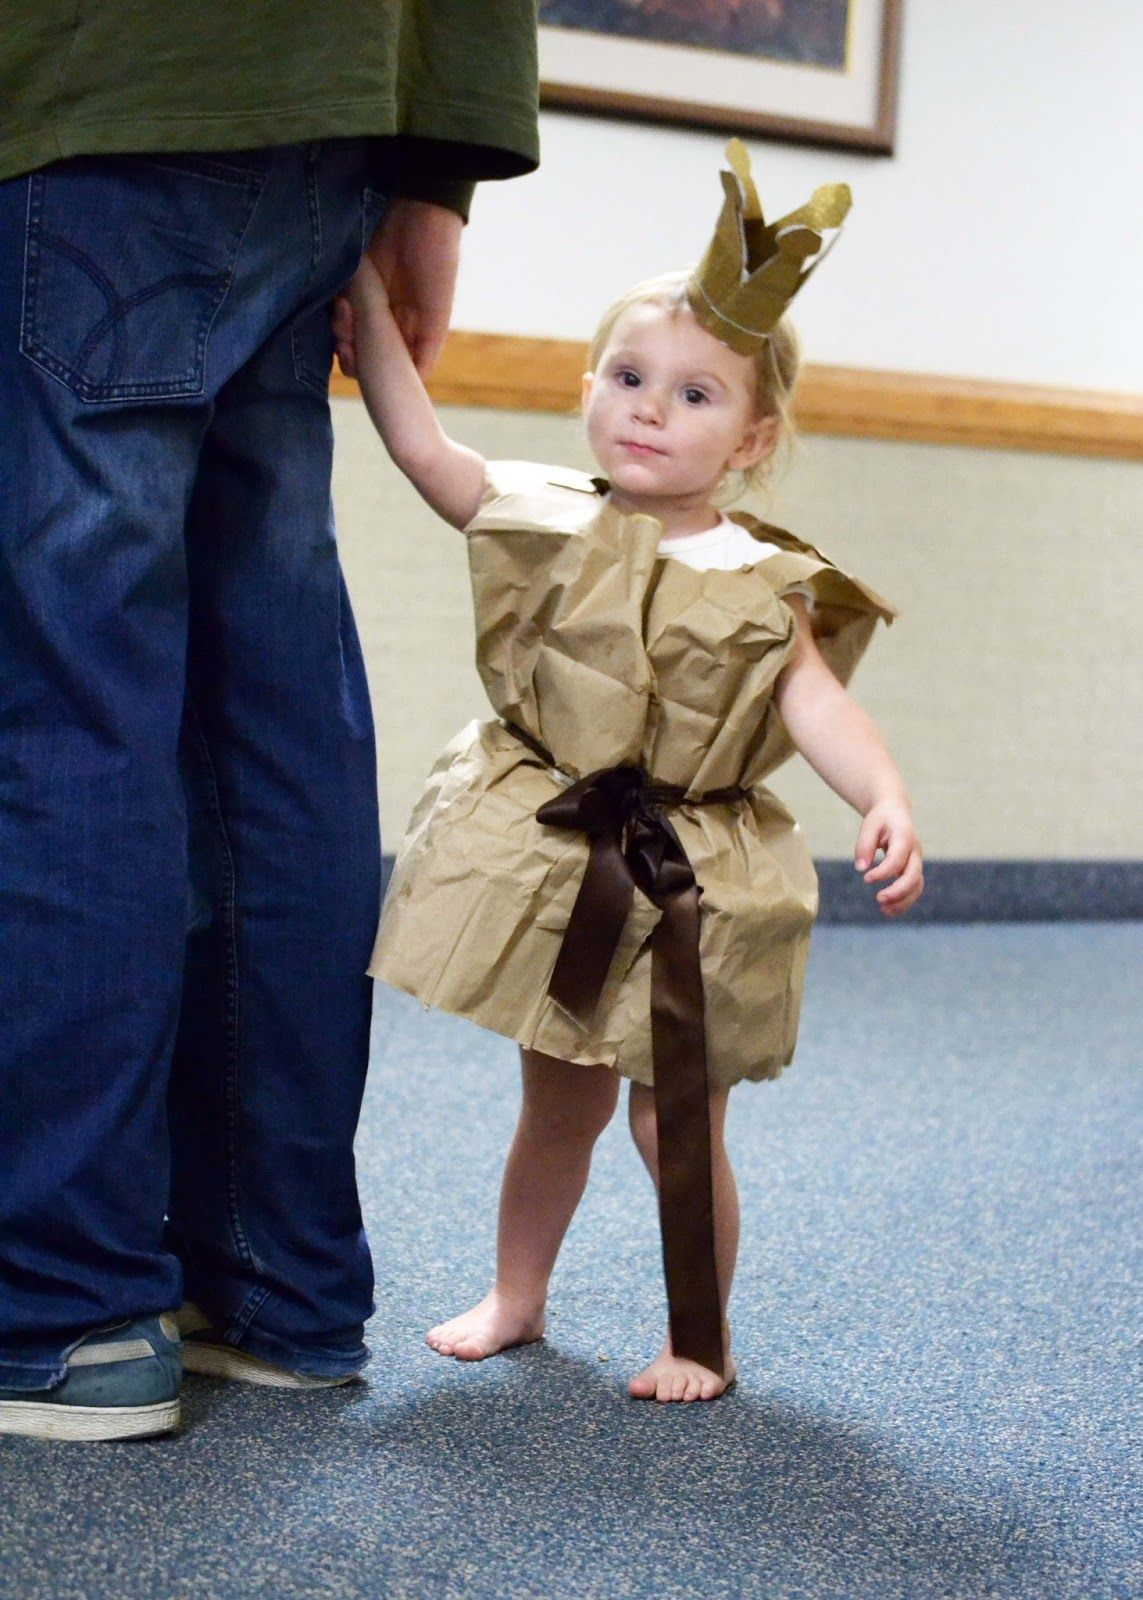 Toddler costume. Paper bag princess #paperbagprincesscostume Toddler costume. Paper bag princess #paperbagprincesscostume Toddler costume. Paper bag princess #paperbagprincesscostume Toddler costume. Paper bag princess #paperbagprincesscostume